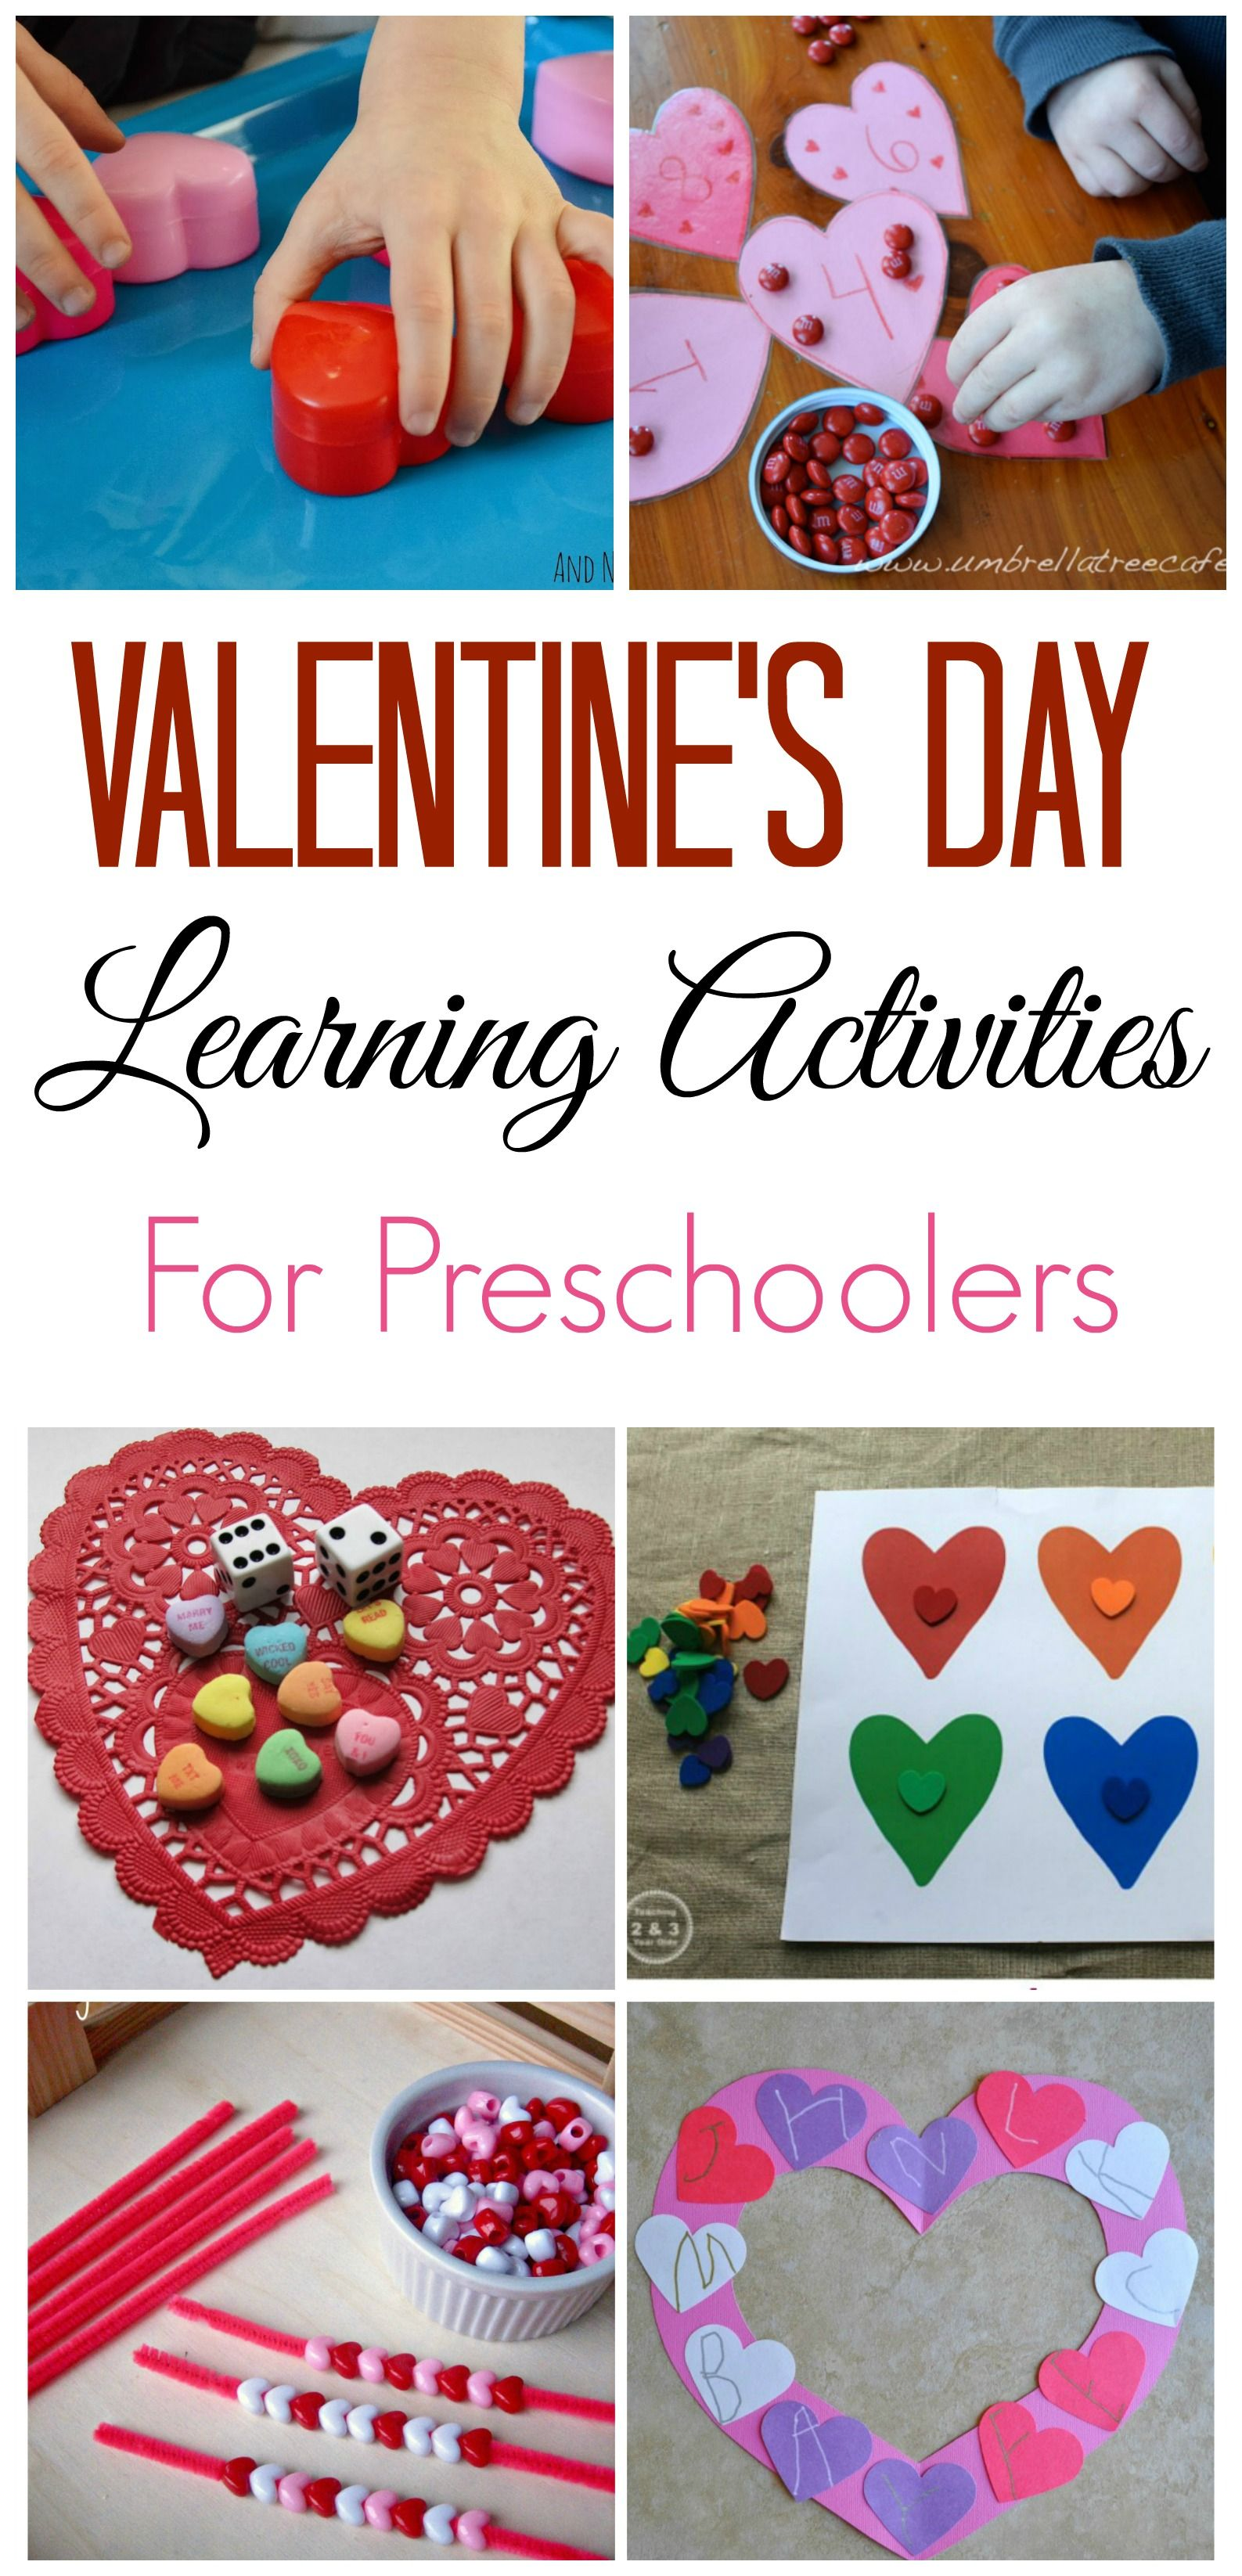 Valentine S Day Learning Activities For Preschoolers